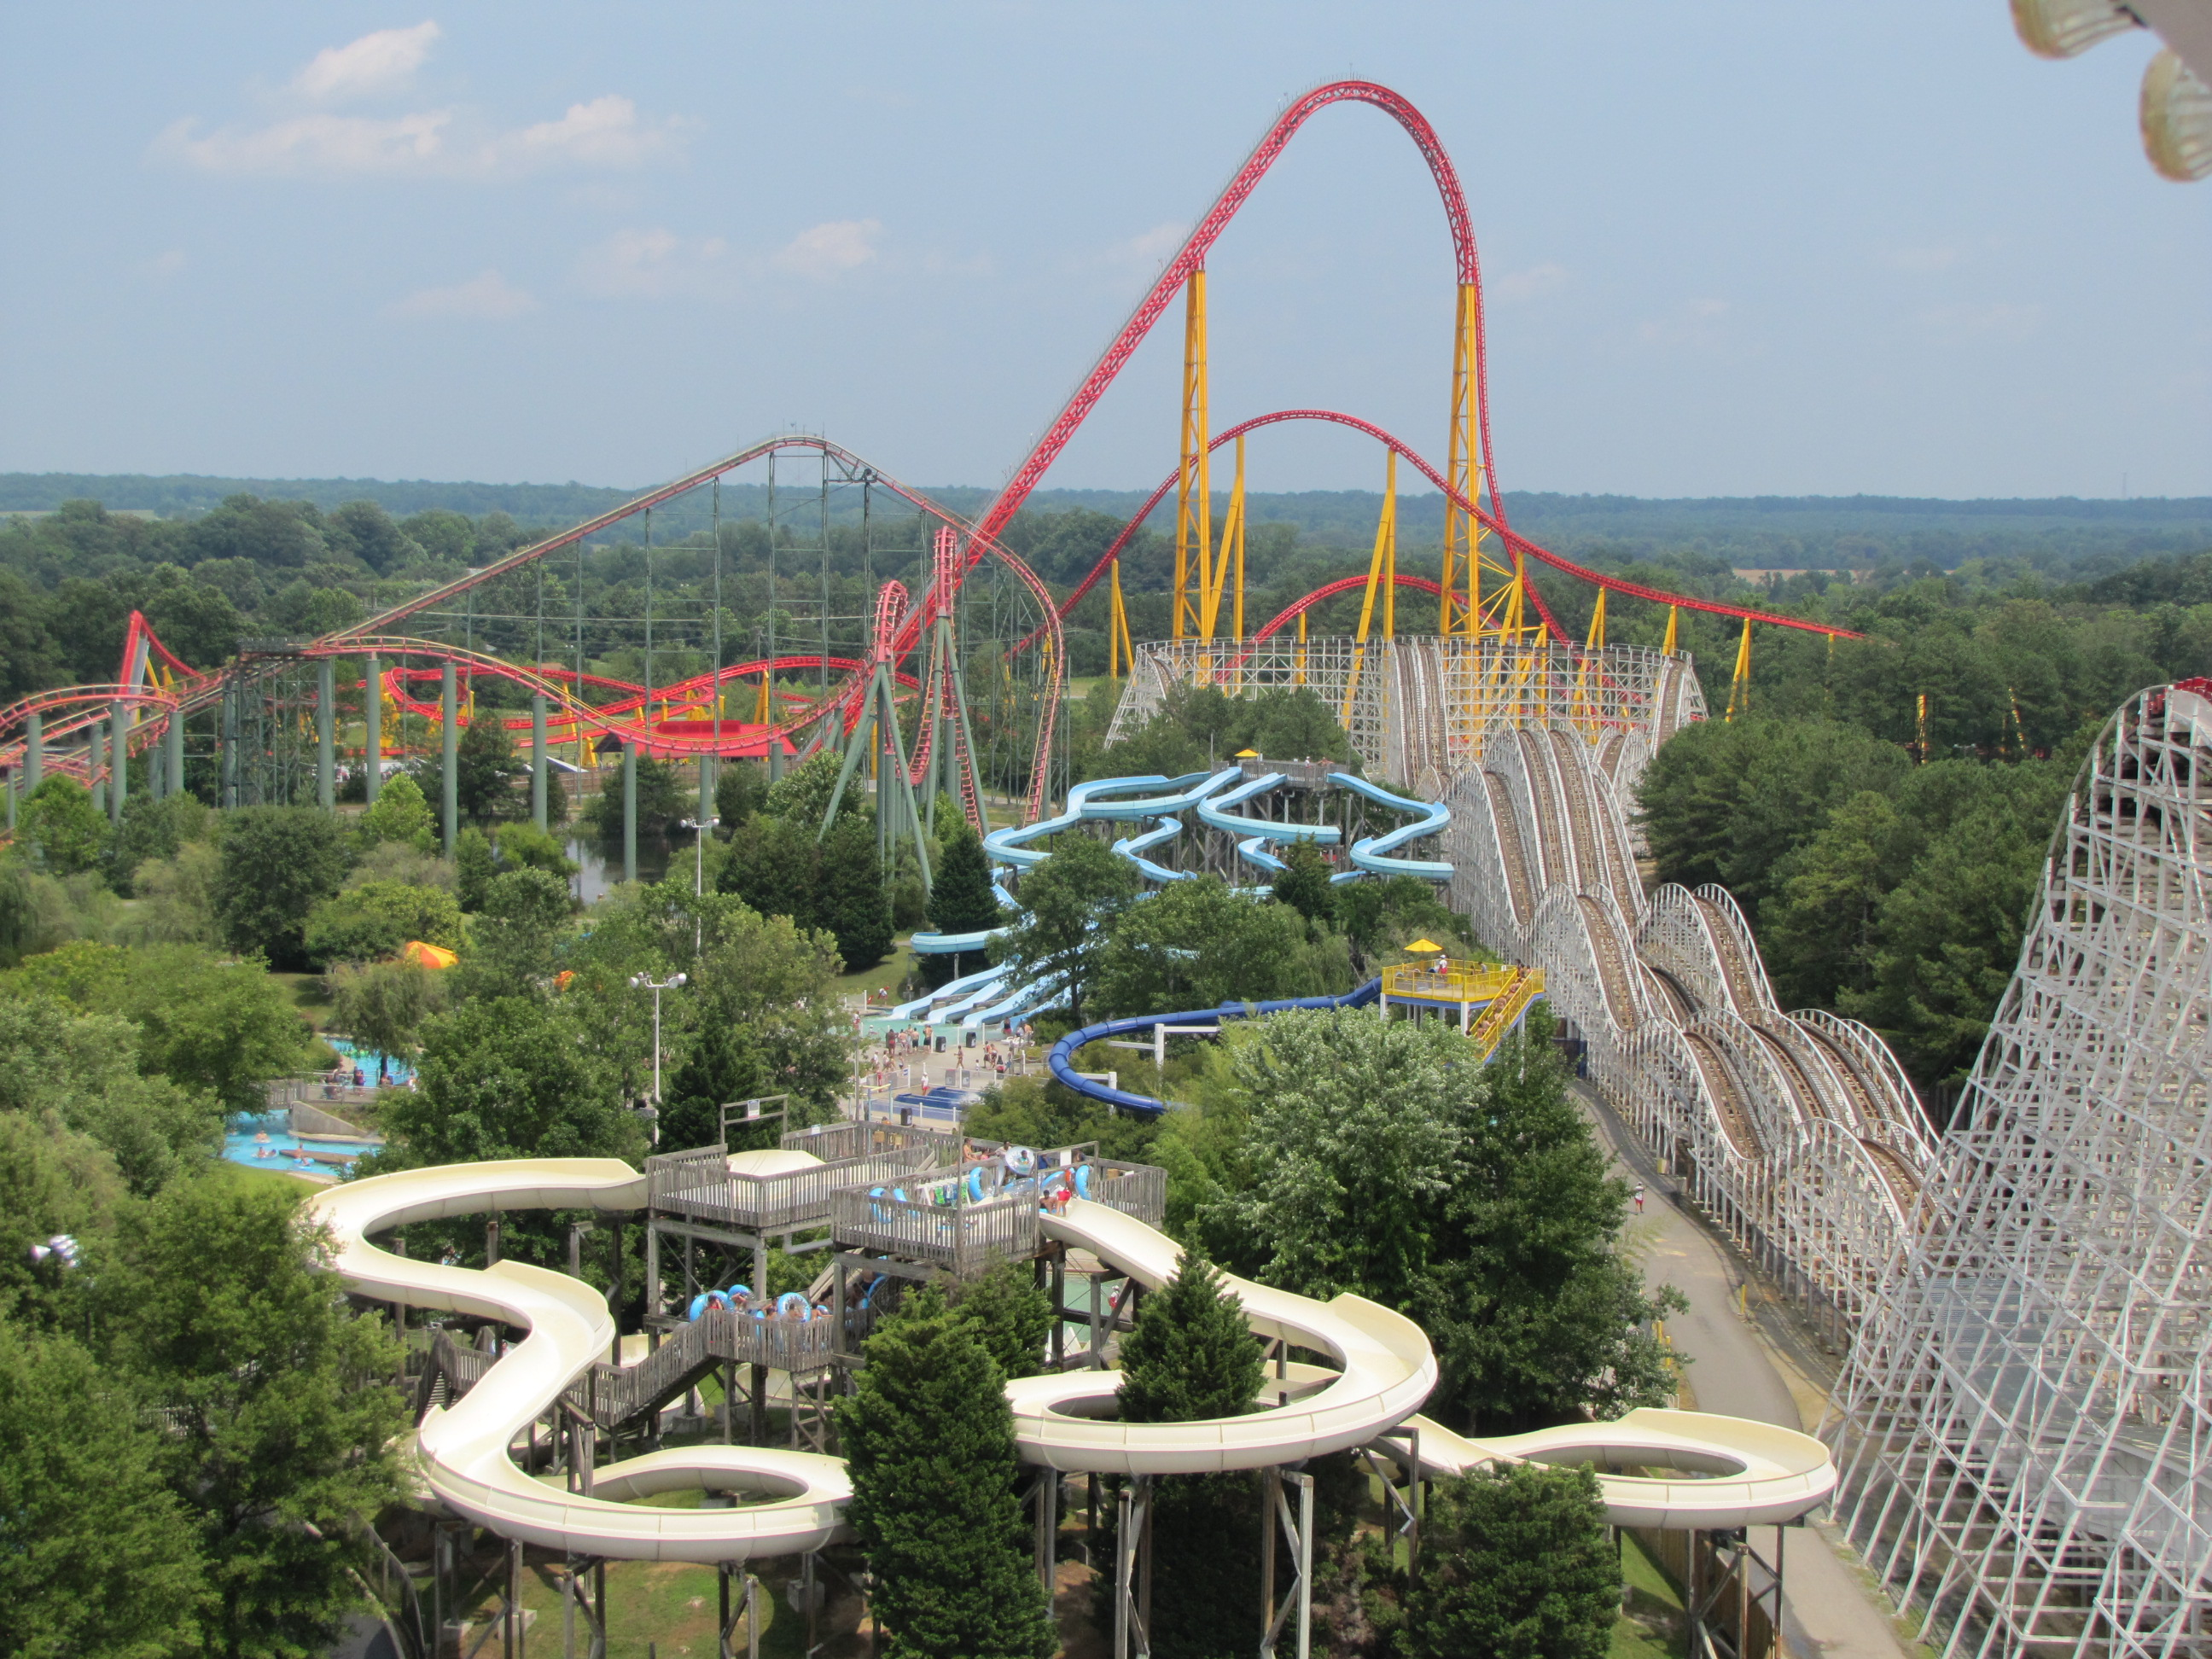 Kings Dominion, Doswell: